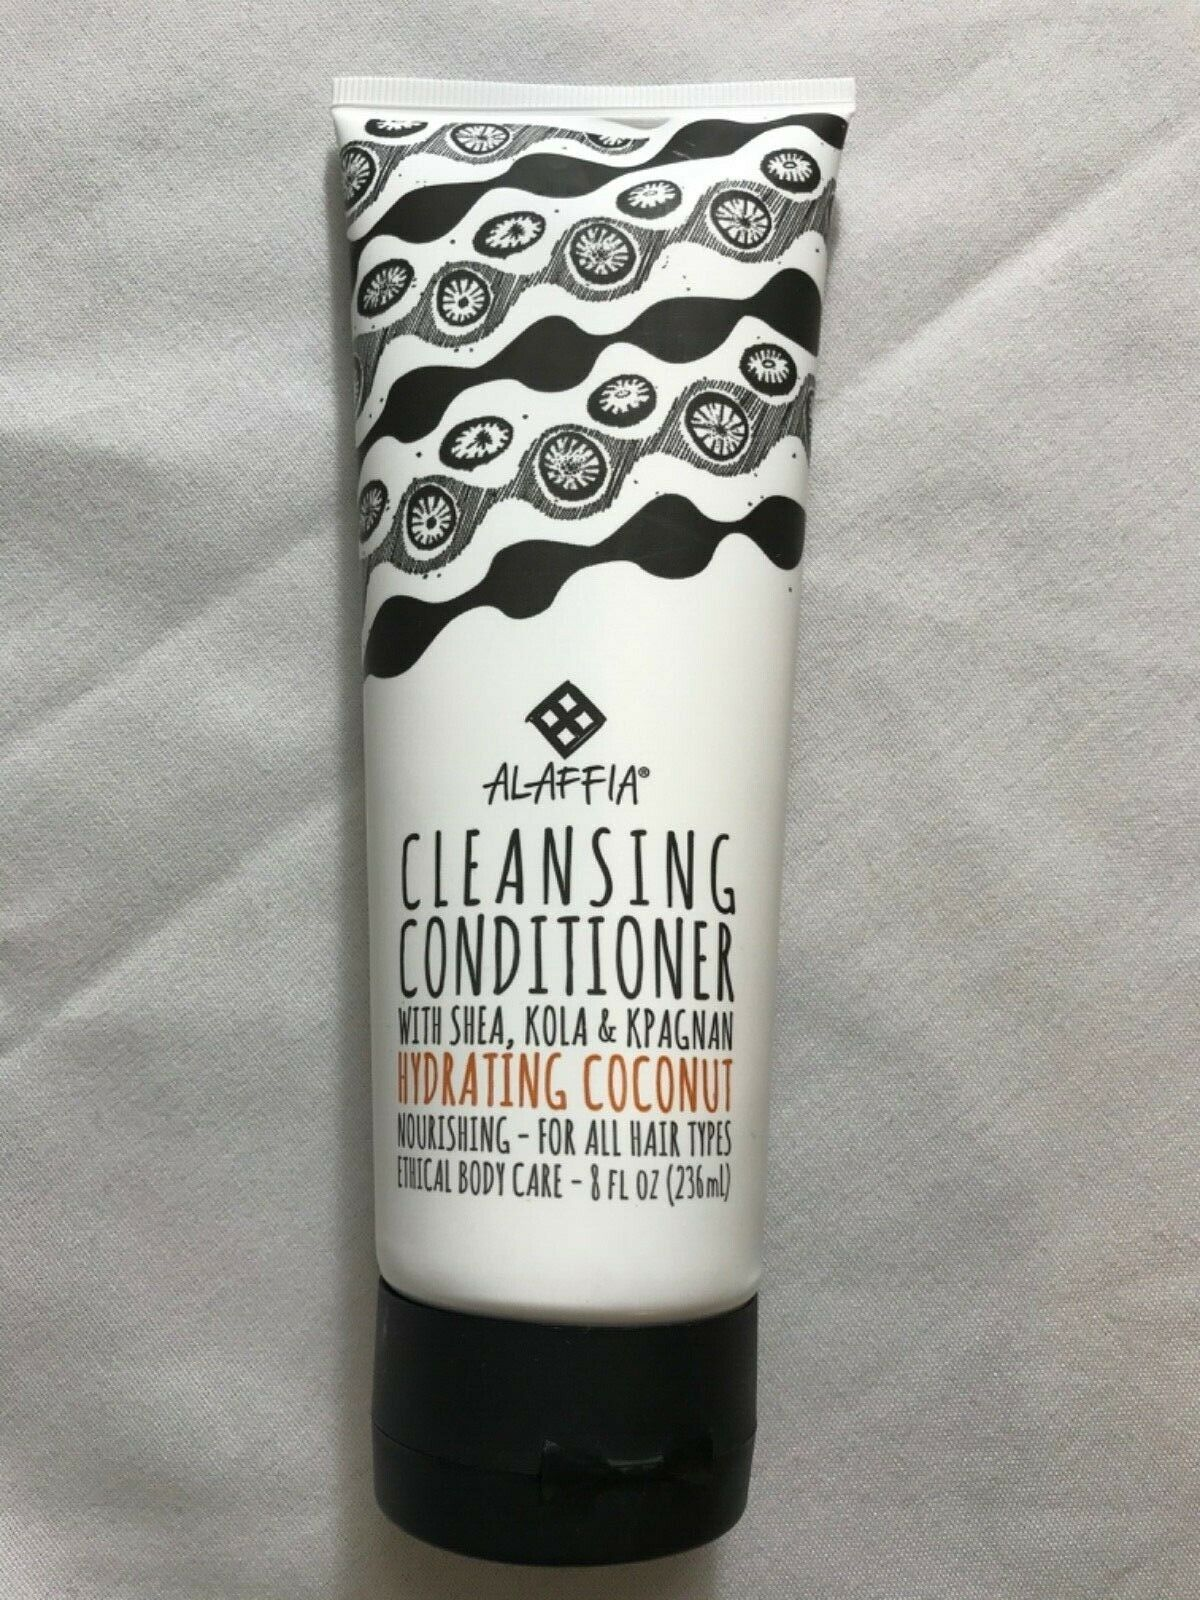 Primary image for Alaffia - Cleansing Conditioner - w/Shea, Kola, Kpagnan, & Coconut Reishi - 8 oz